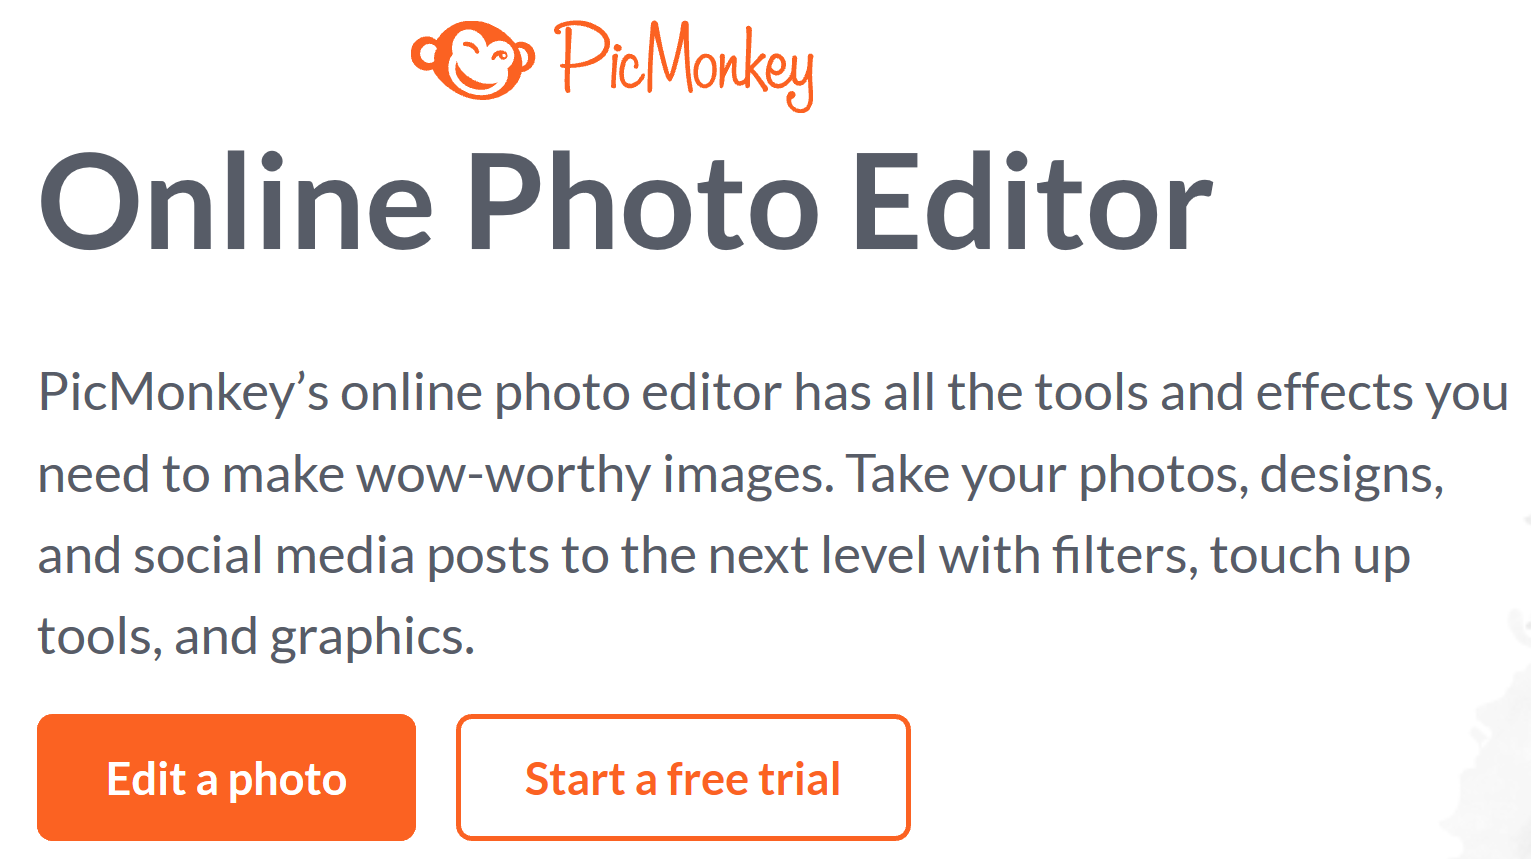 SignUp for PicMonkey